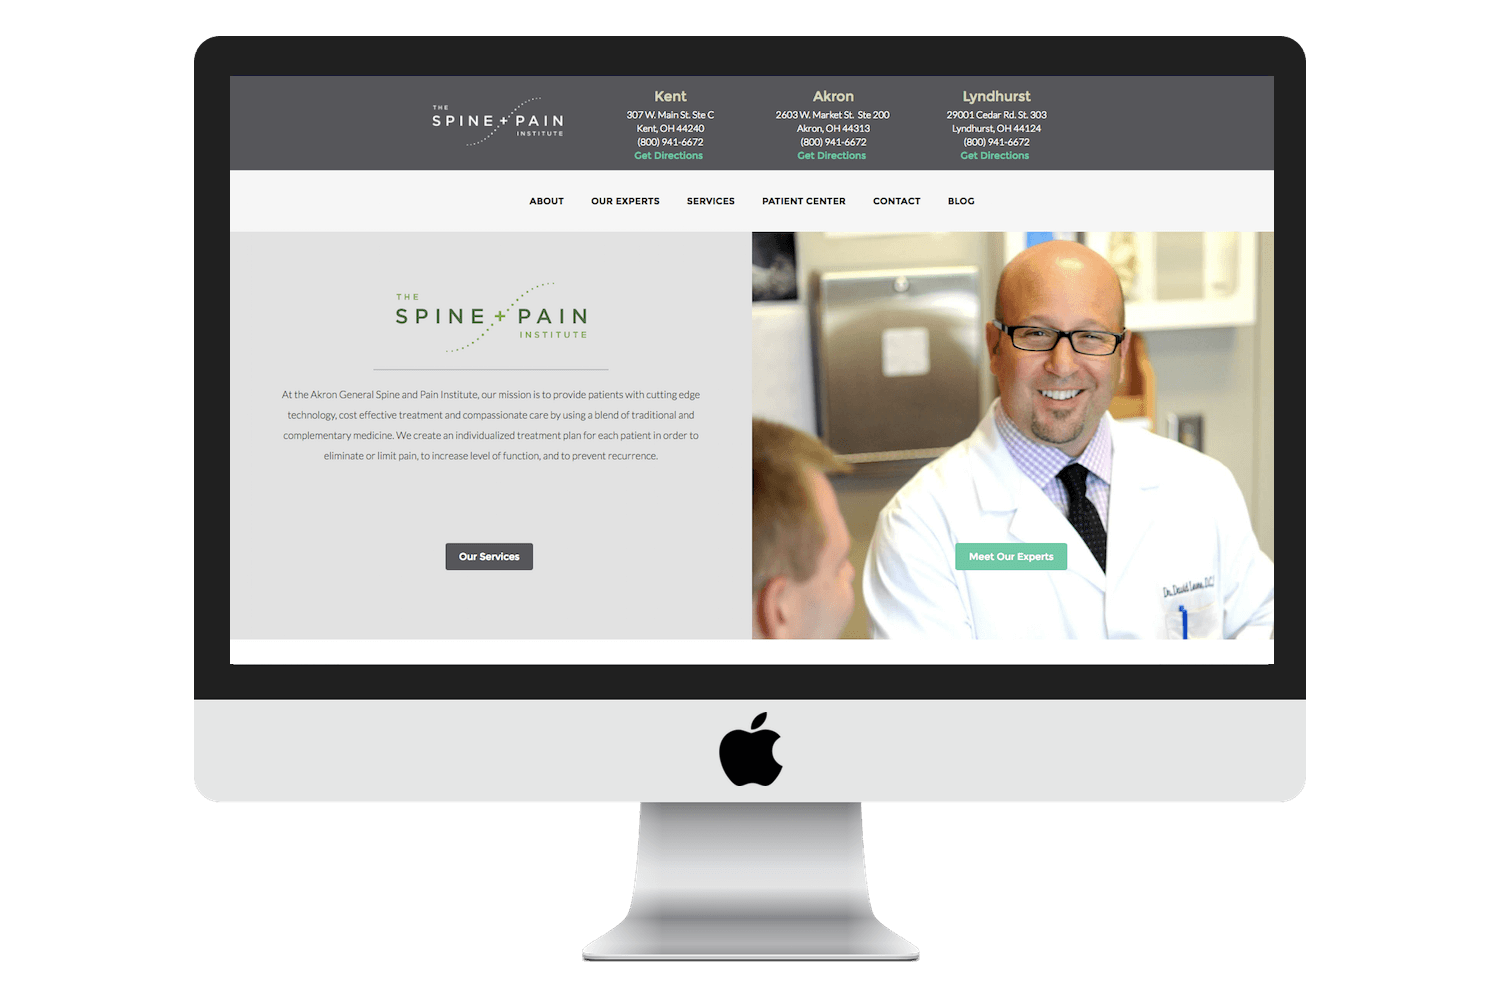 Image of responsive web design case study by Quetra Creative for Spine Pain iMac